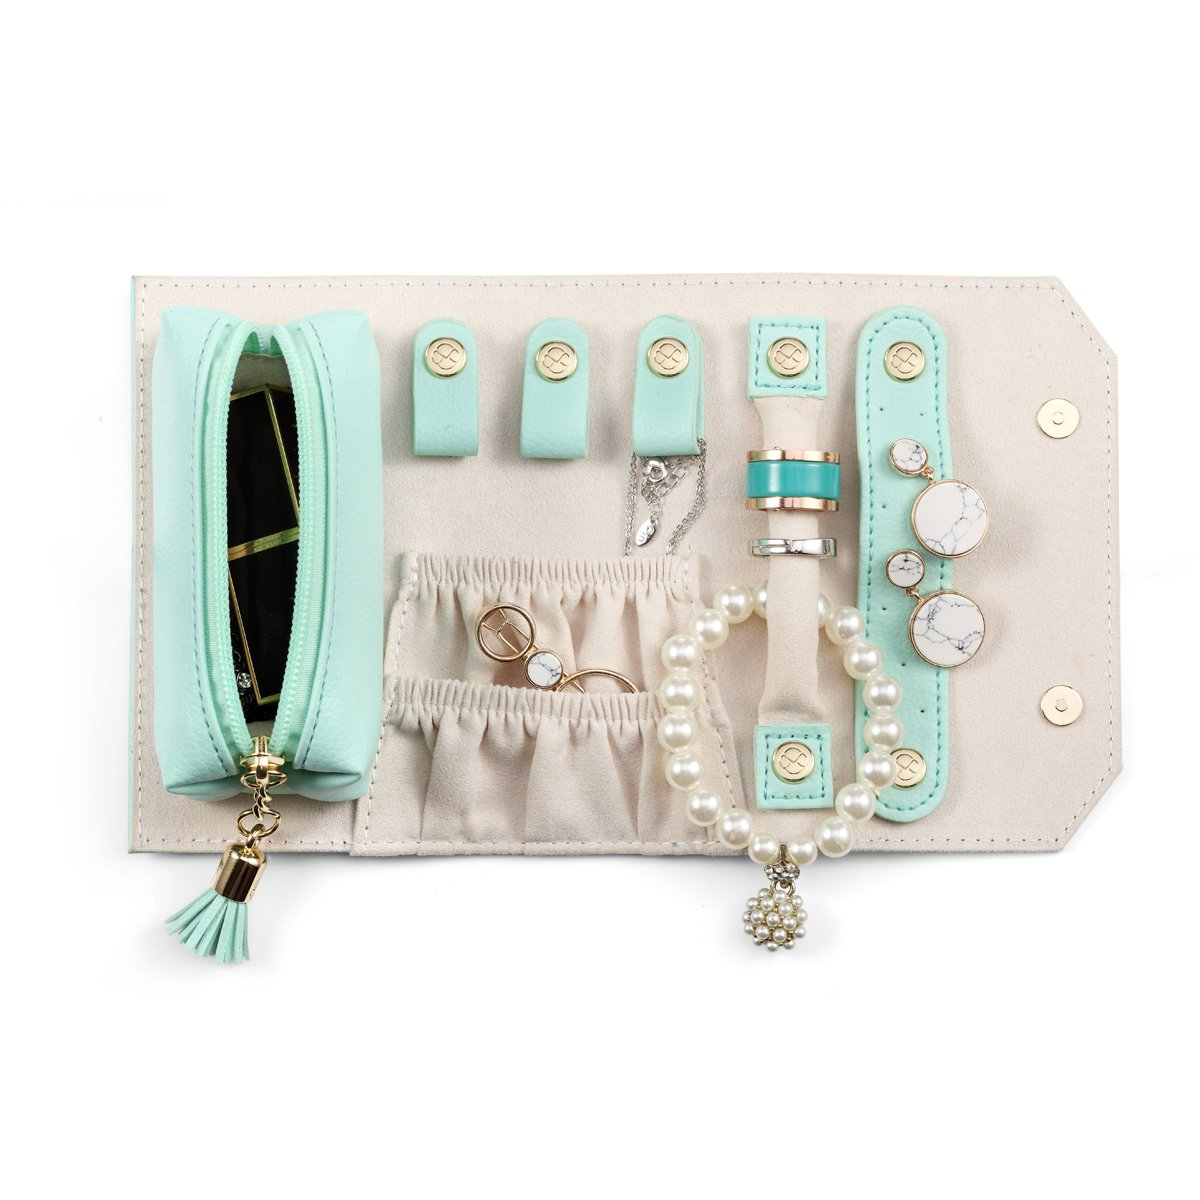 Vlando Small Travel Jewelry Roll Bag Organizer, Smart Size & Light Weight for Daily Jewelries (Mint Green)